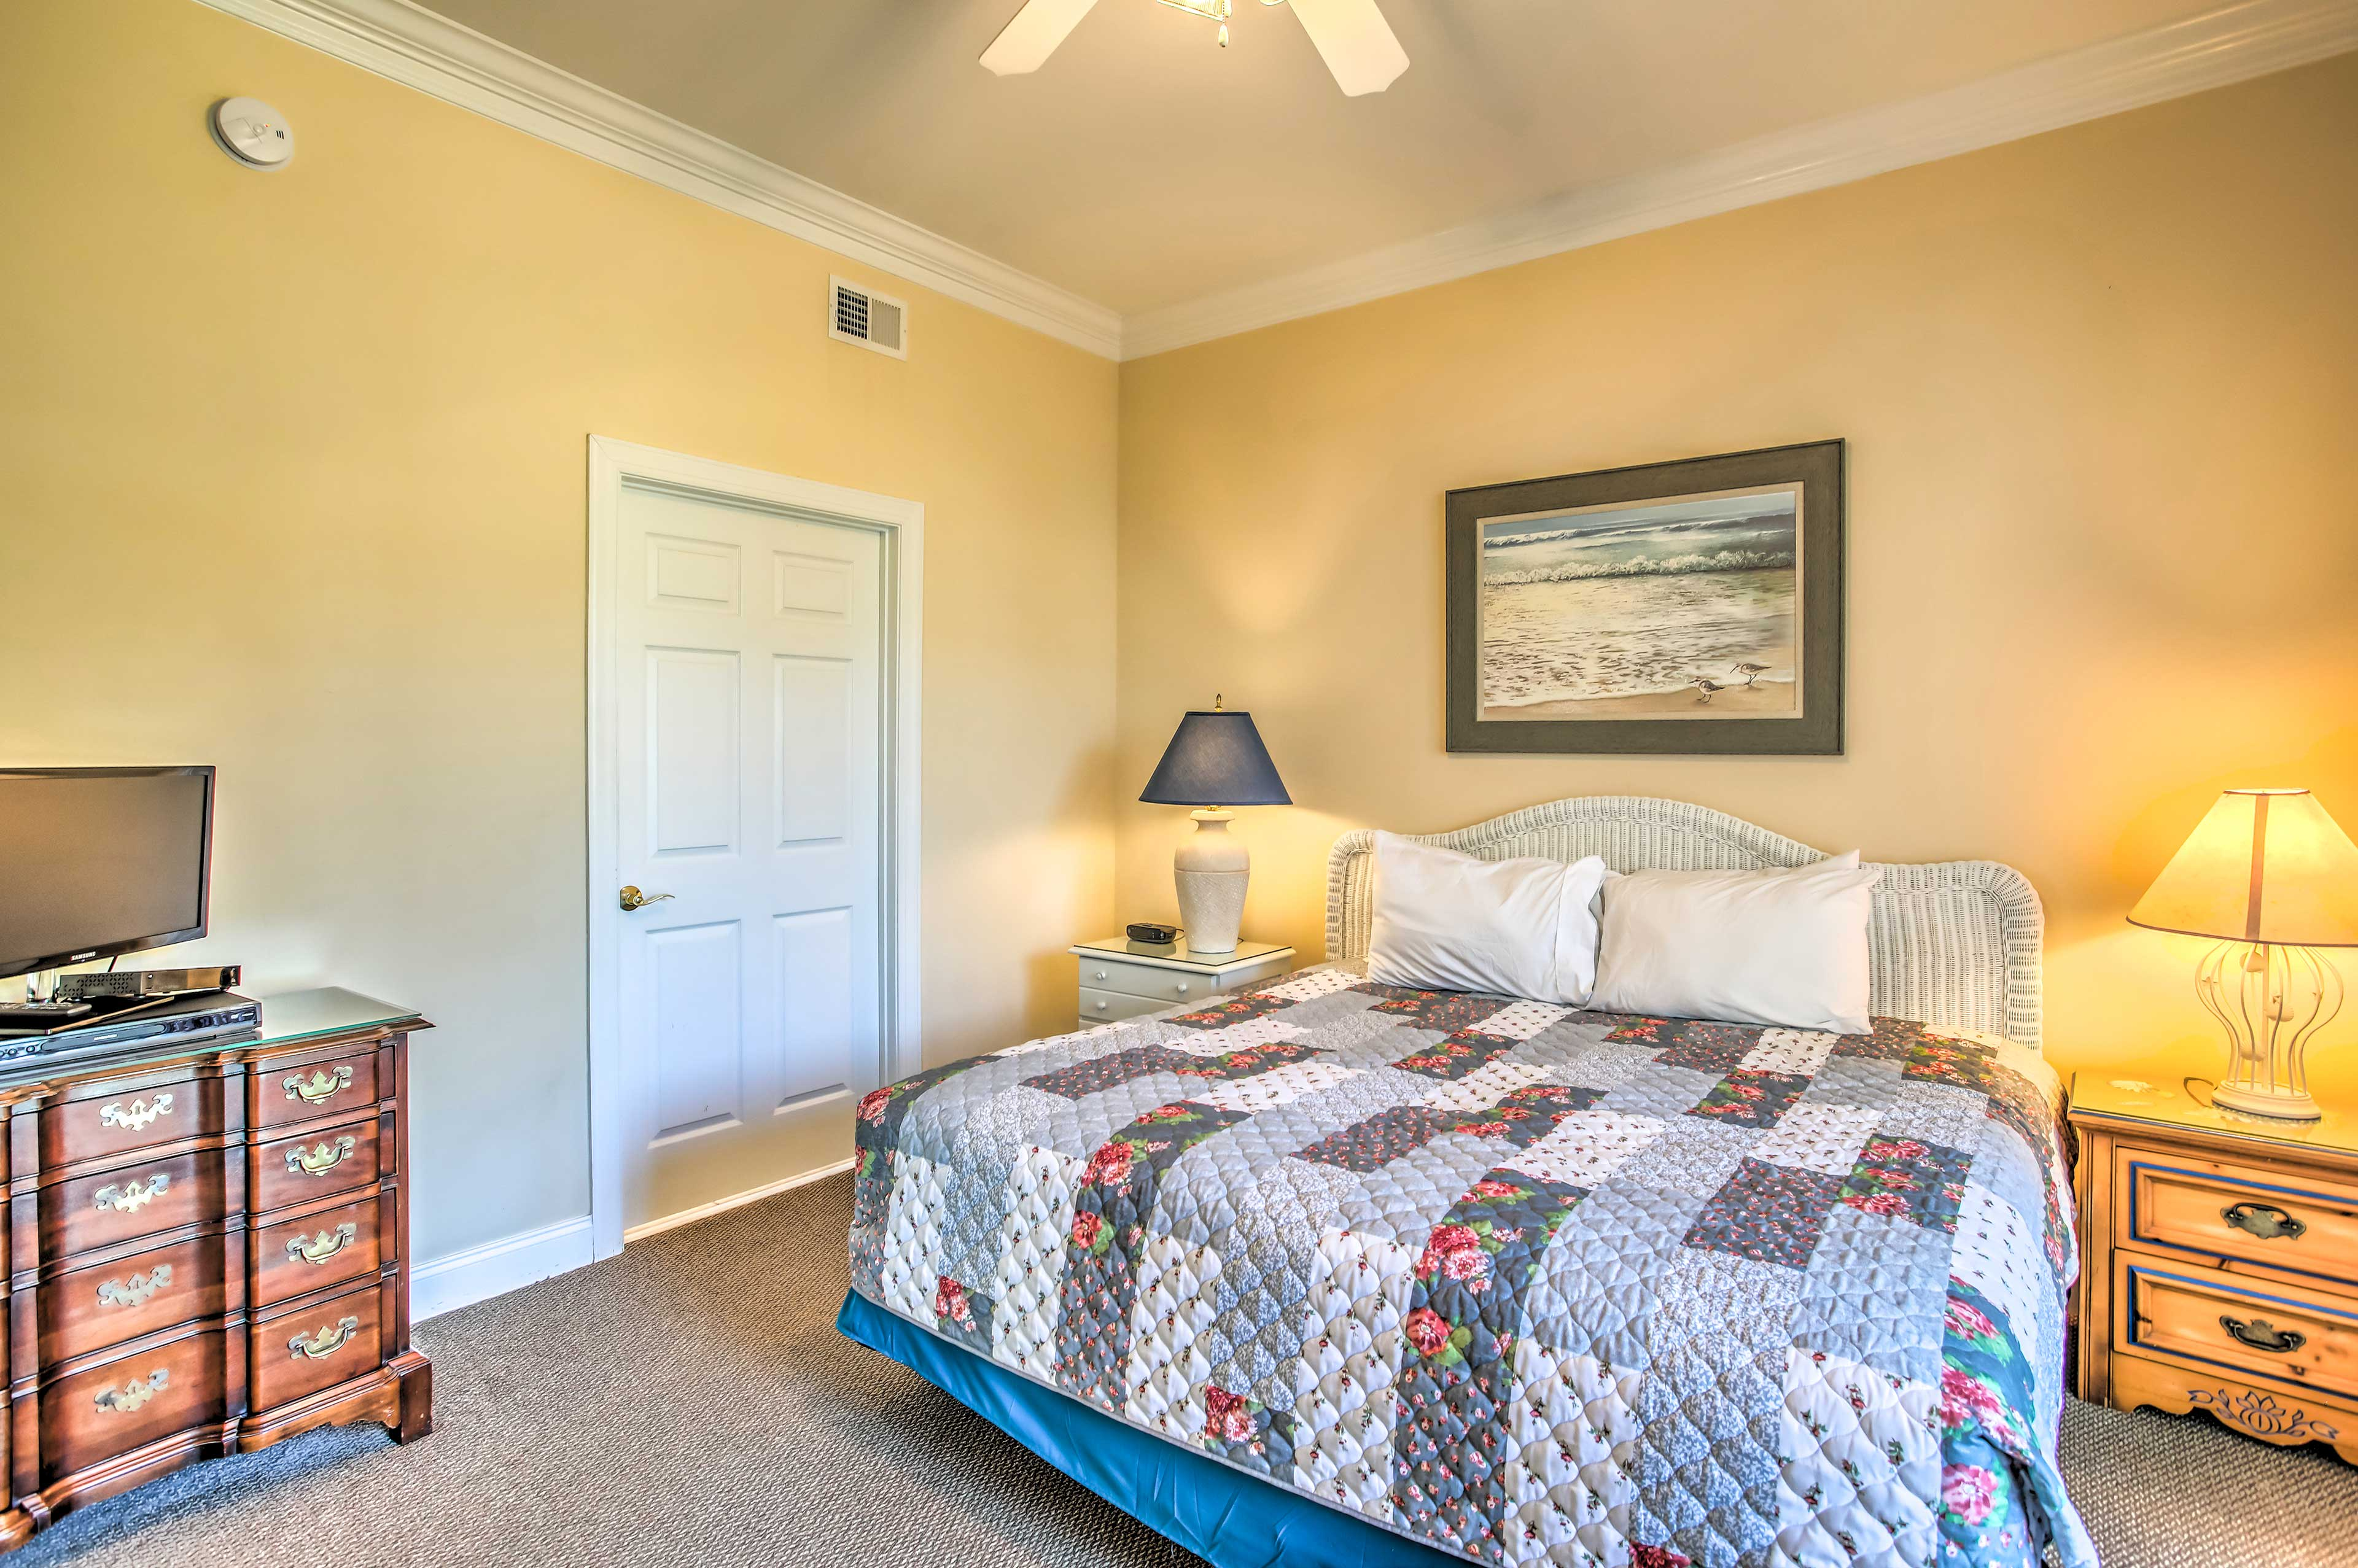 Sleep easily in the master bedroom's king bed.